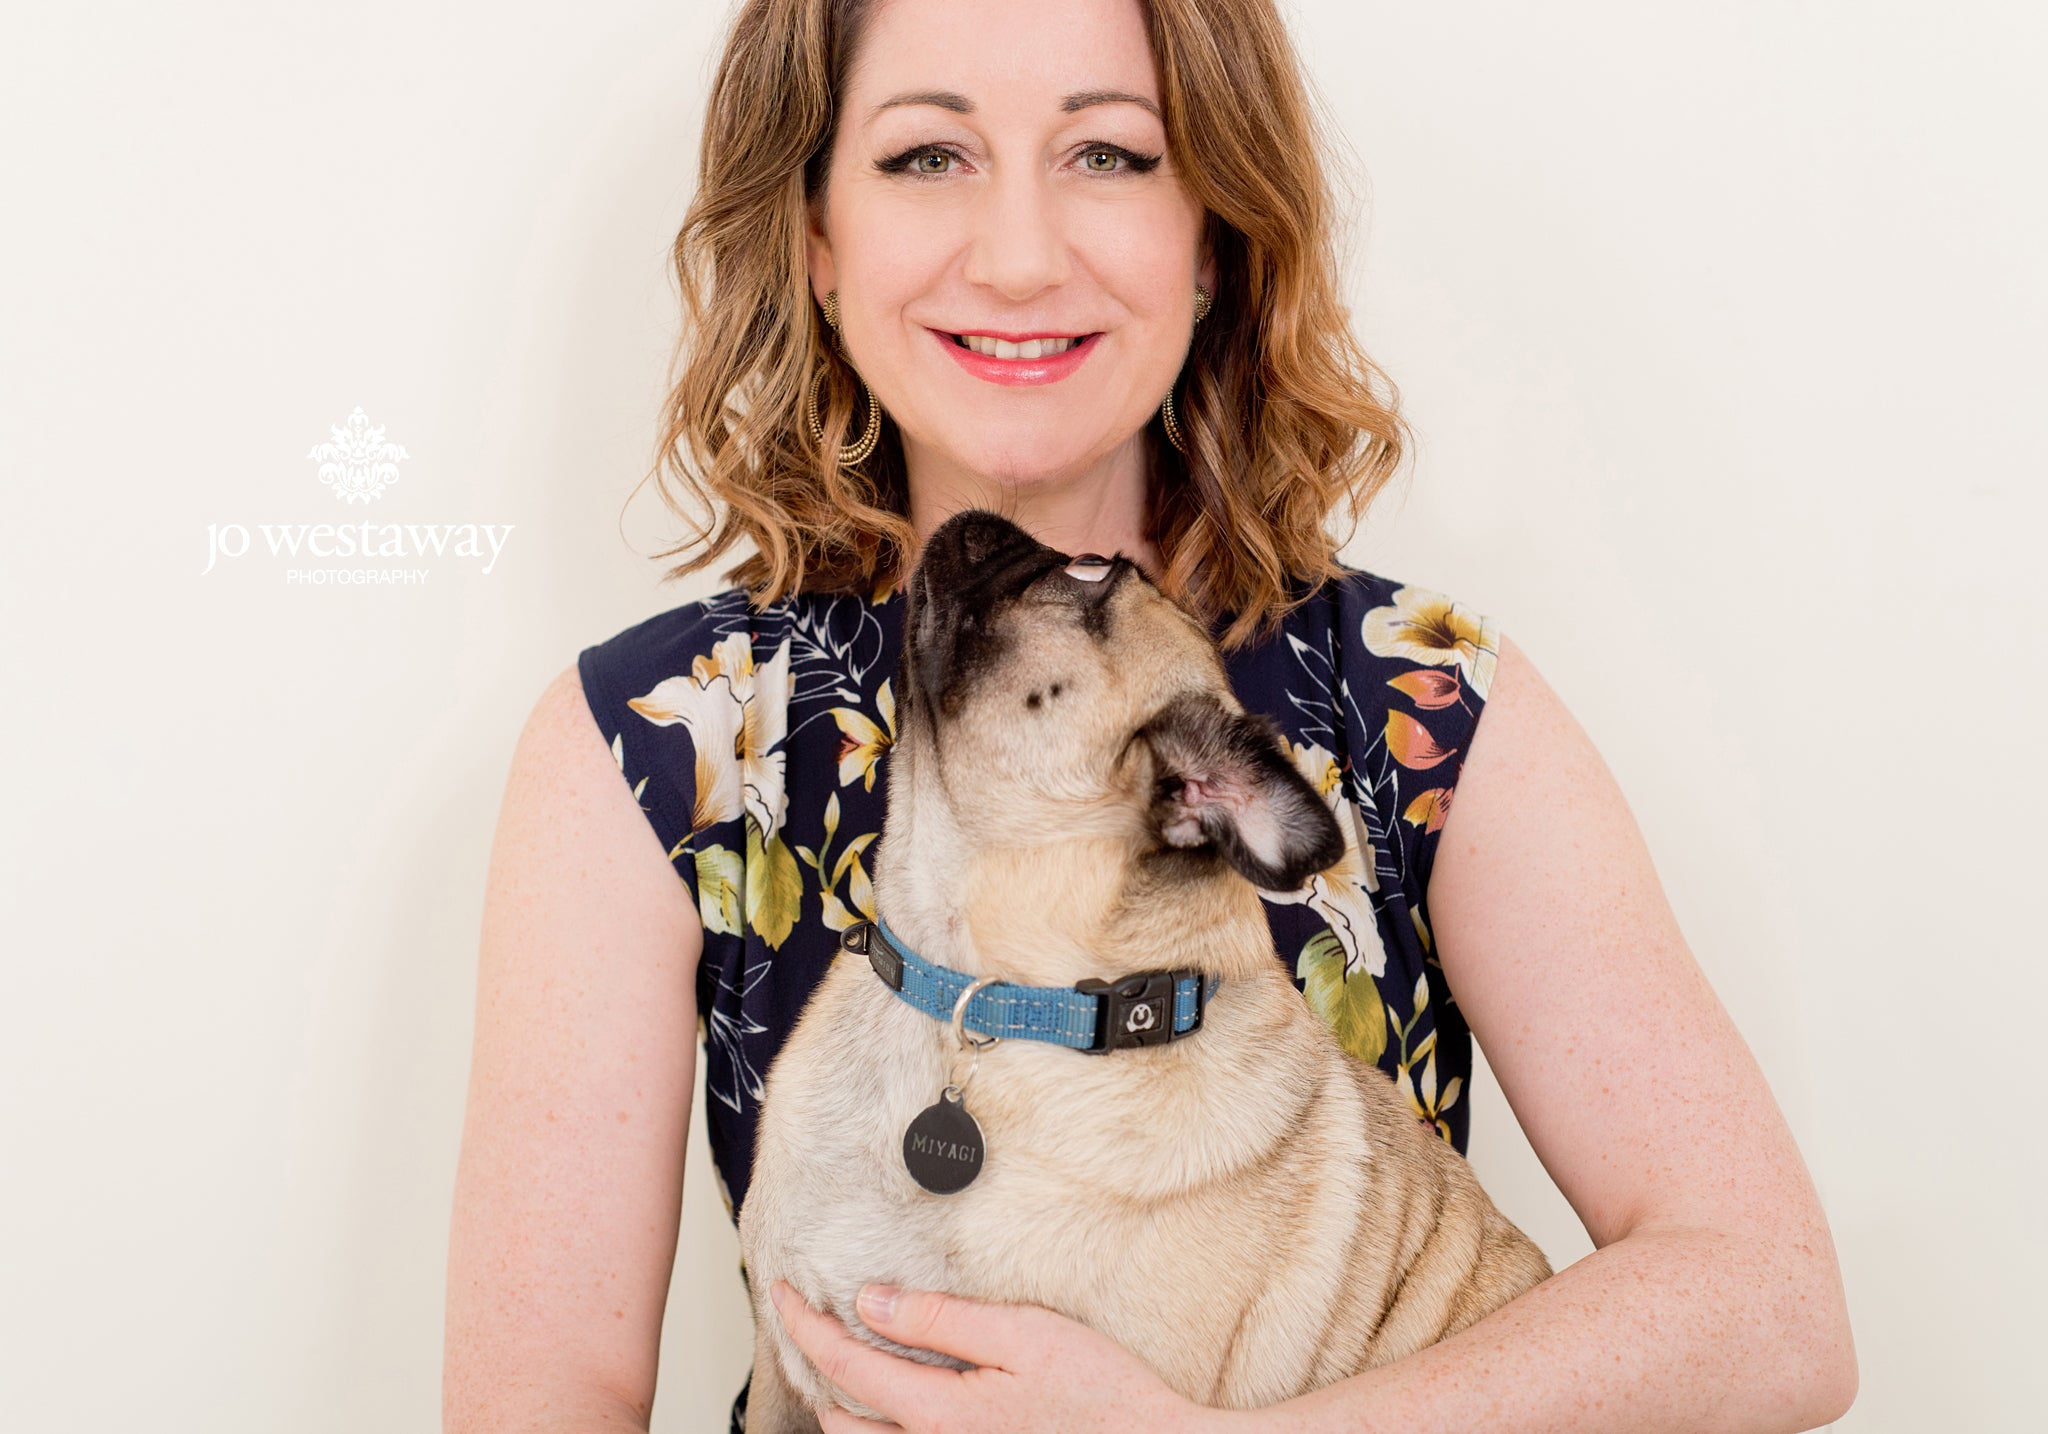 Show how you are in business with personal brand photos - clients love authentic photos - bring your dog!